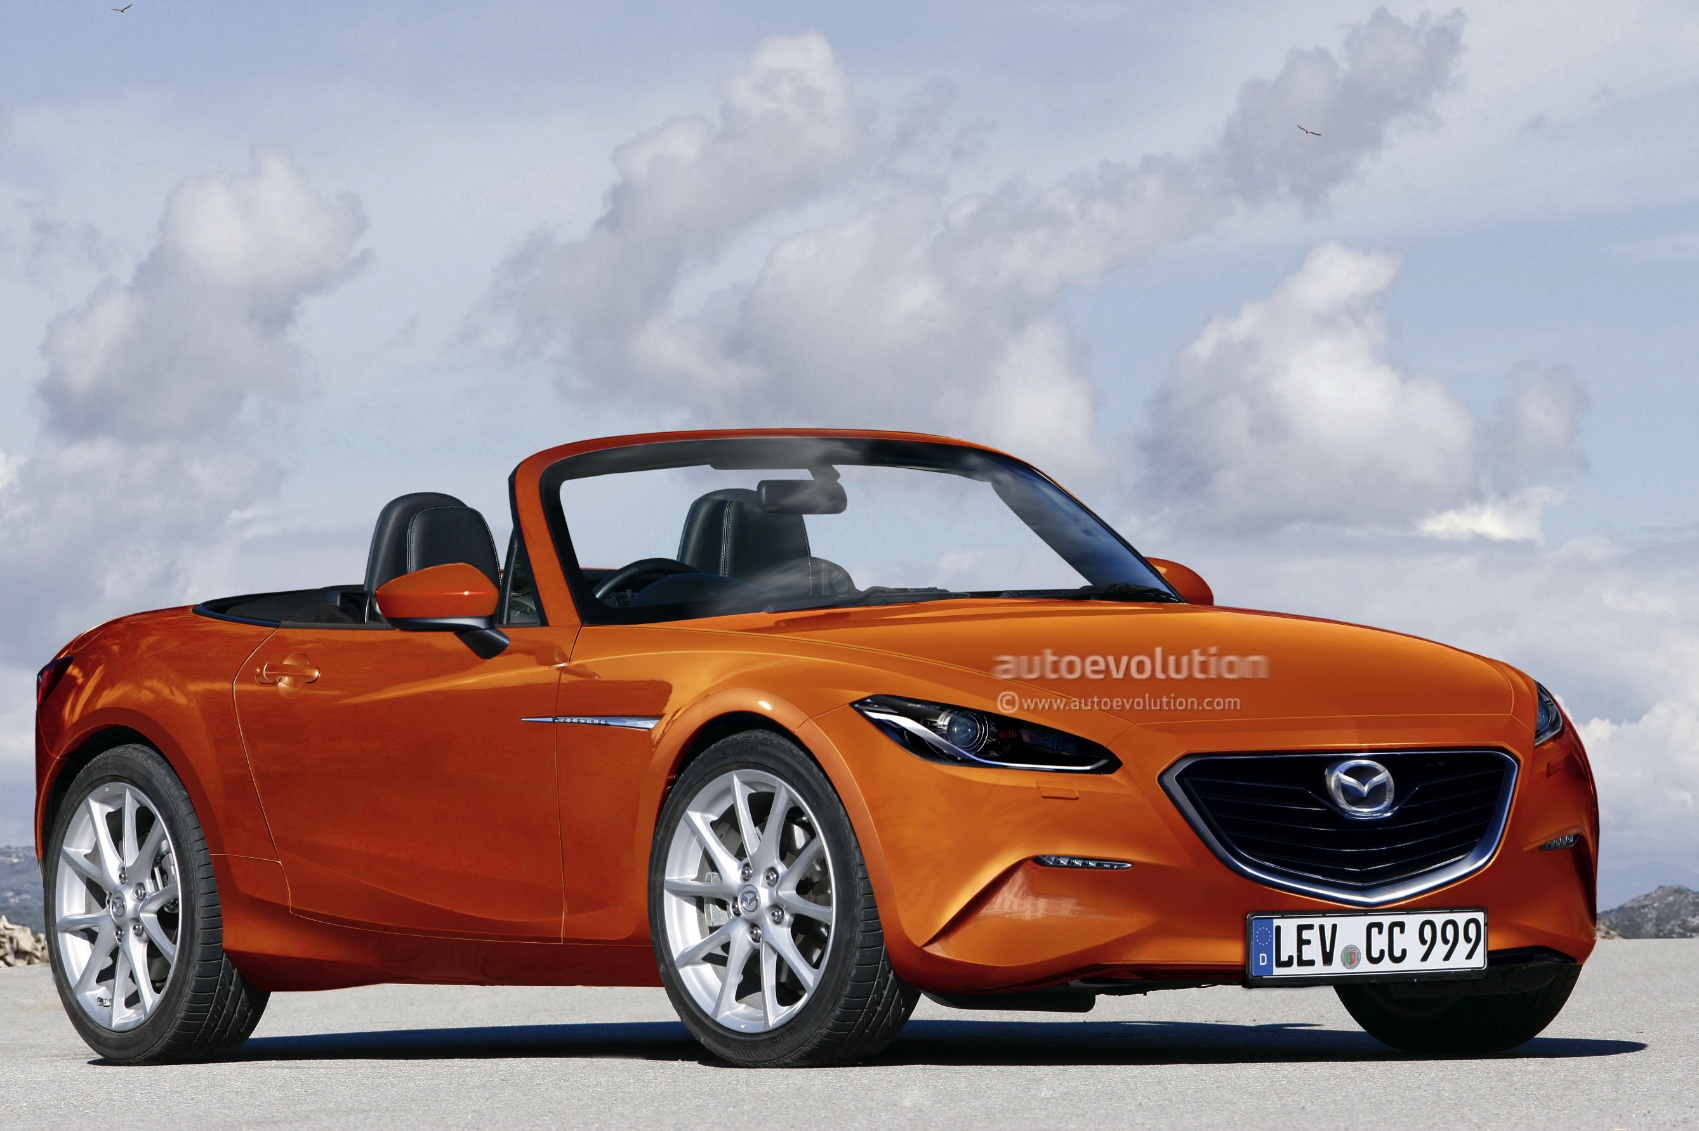 2014 mazda mx 5 miata 1 3l turbo rendering autoevolution. Black Bedroom Furniture Sets. Home Design Ideas